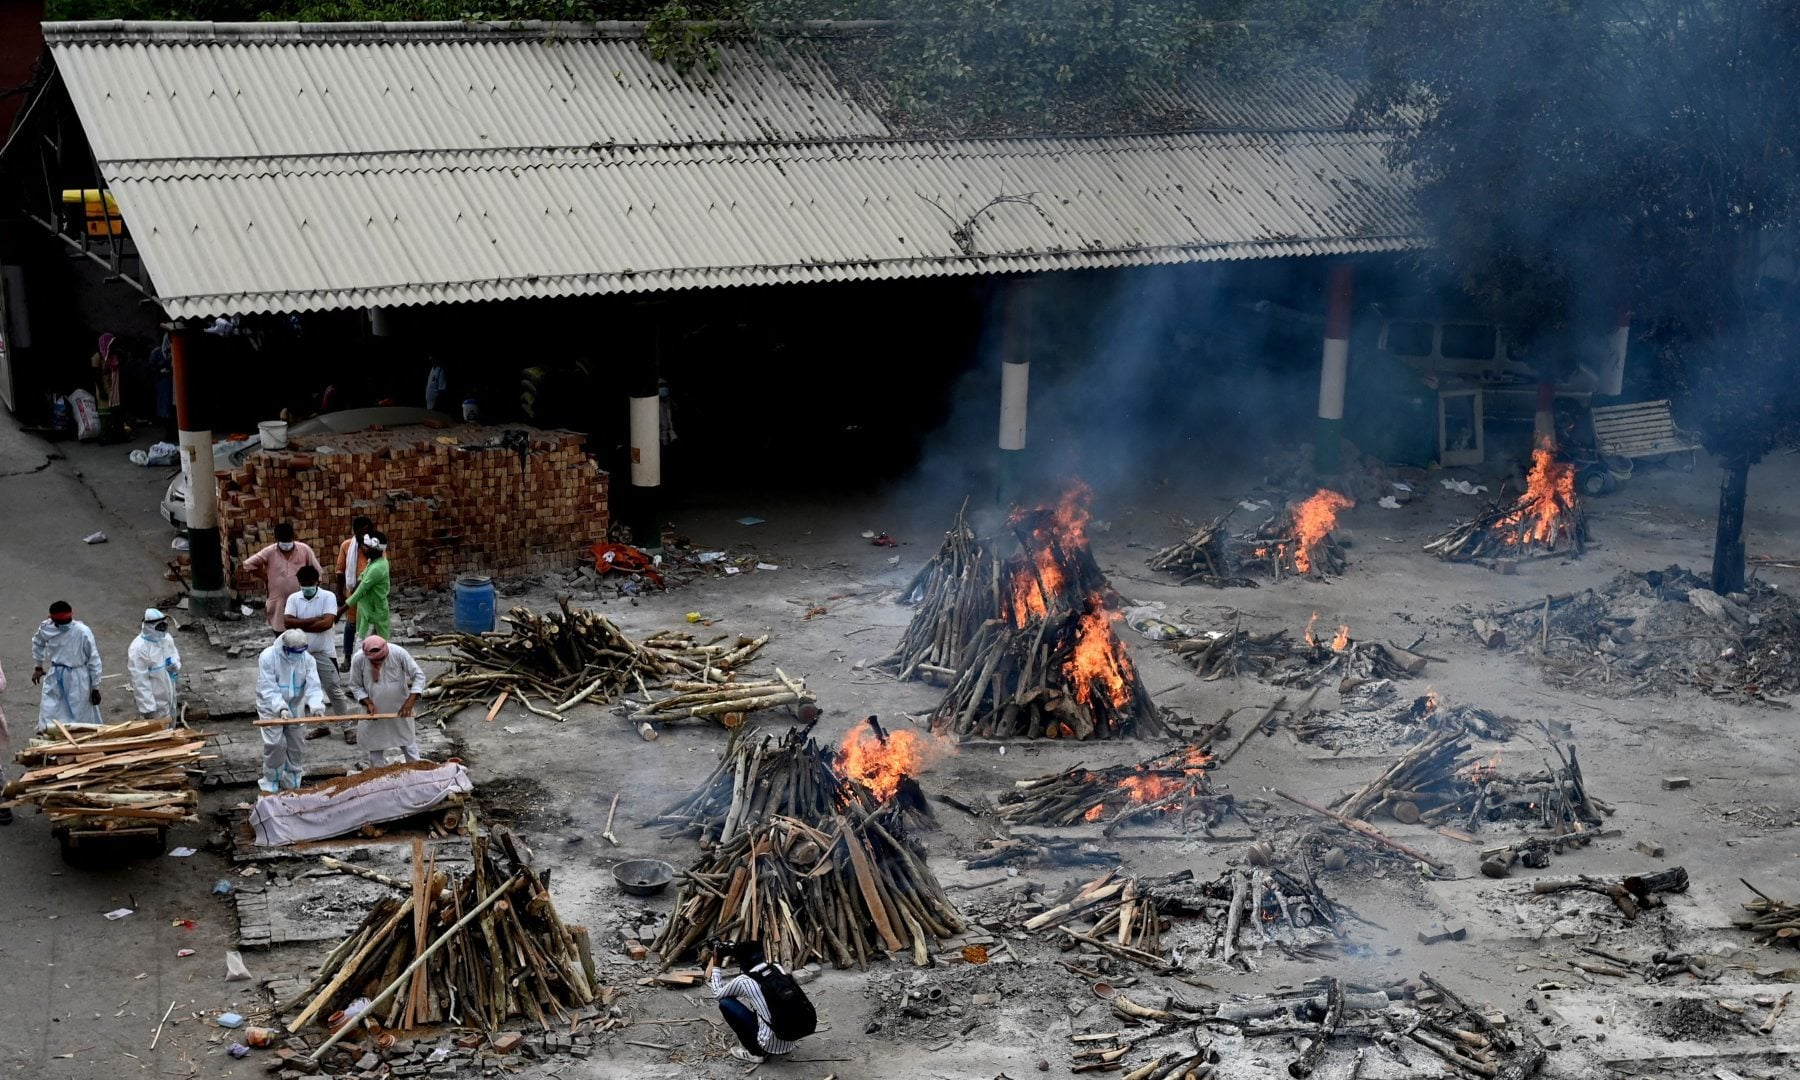 Funeral pyres of people who died due to Covid-19 are seen at a cremation ground in New Delhi on May 4. — AFP